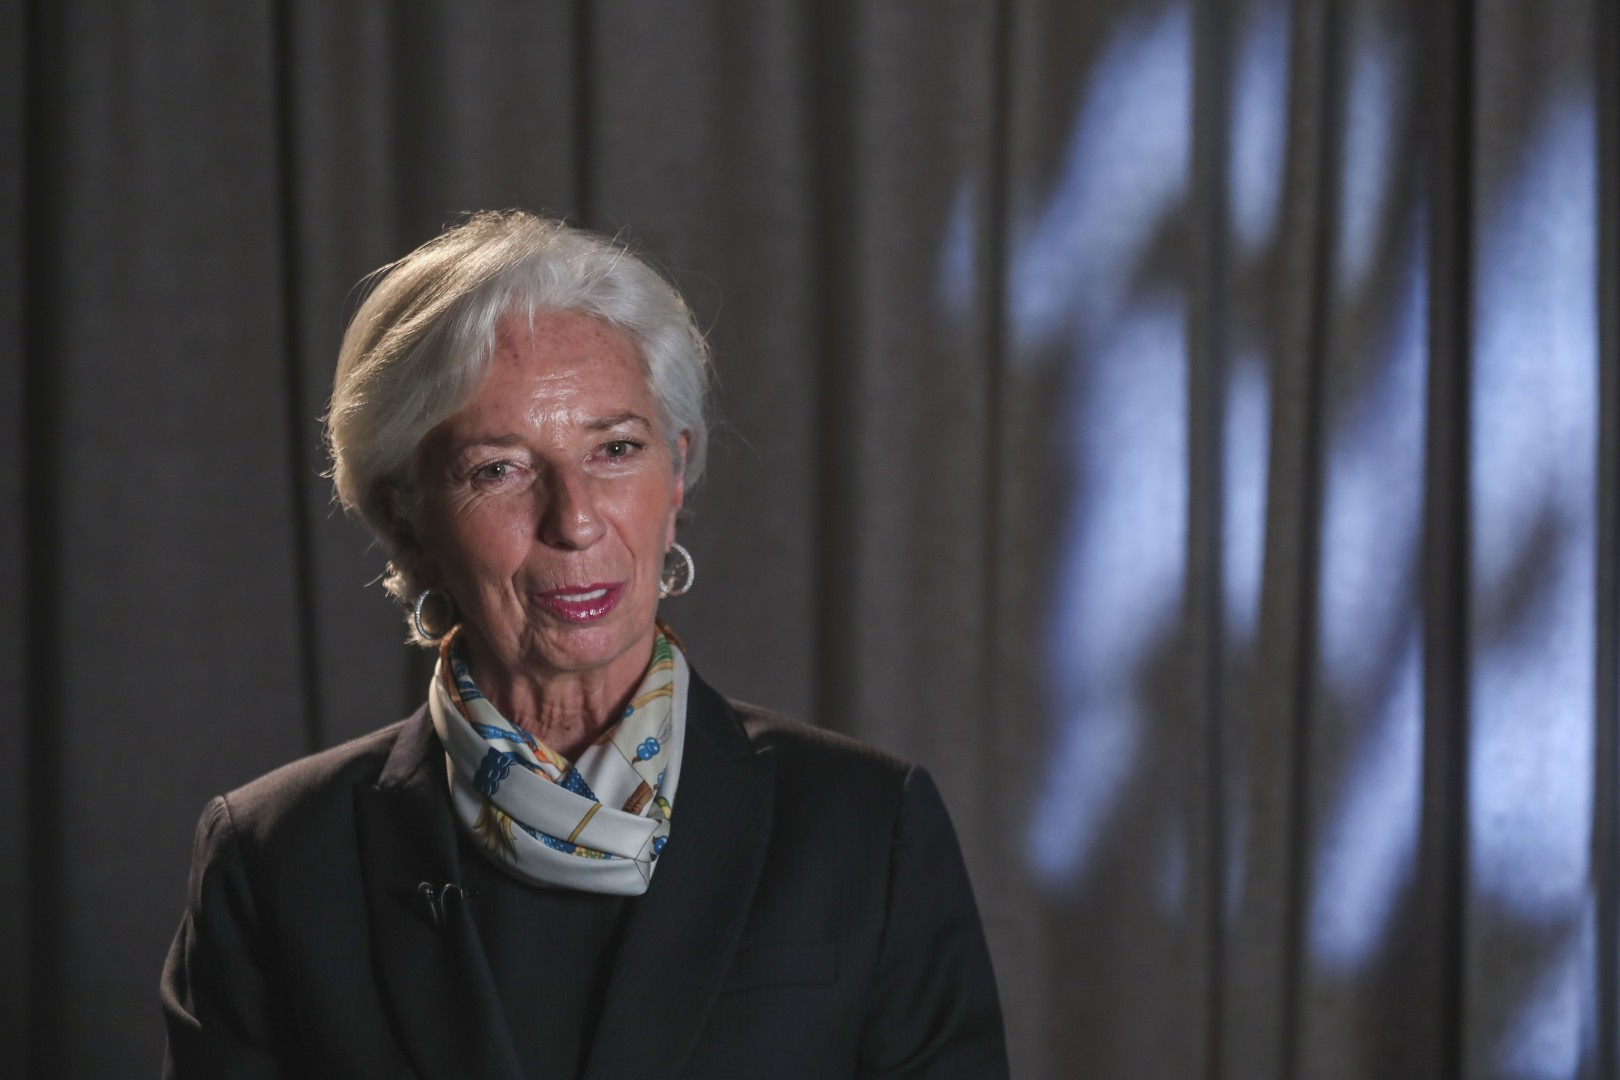 IMF chief Christine Lagarde expresses concern over rising